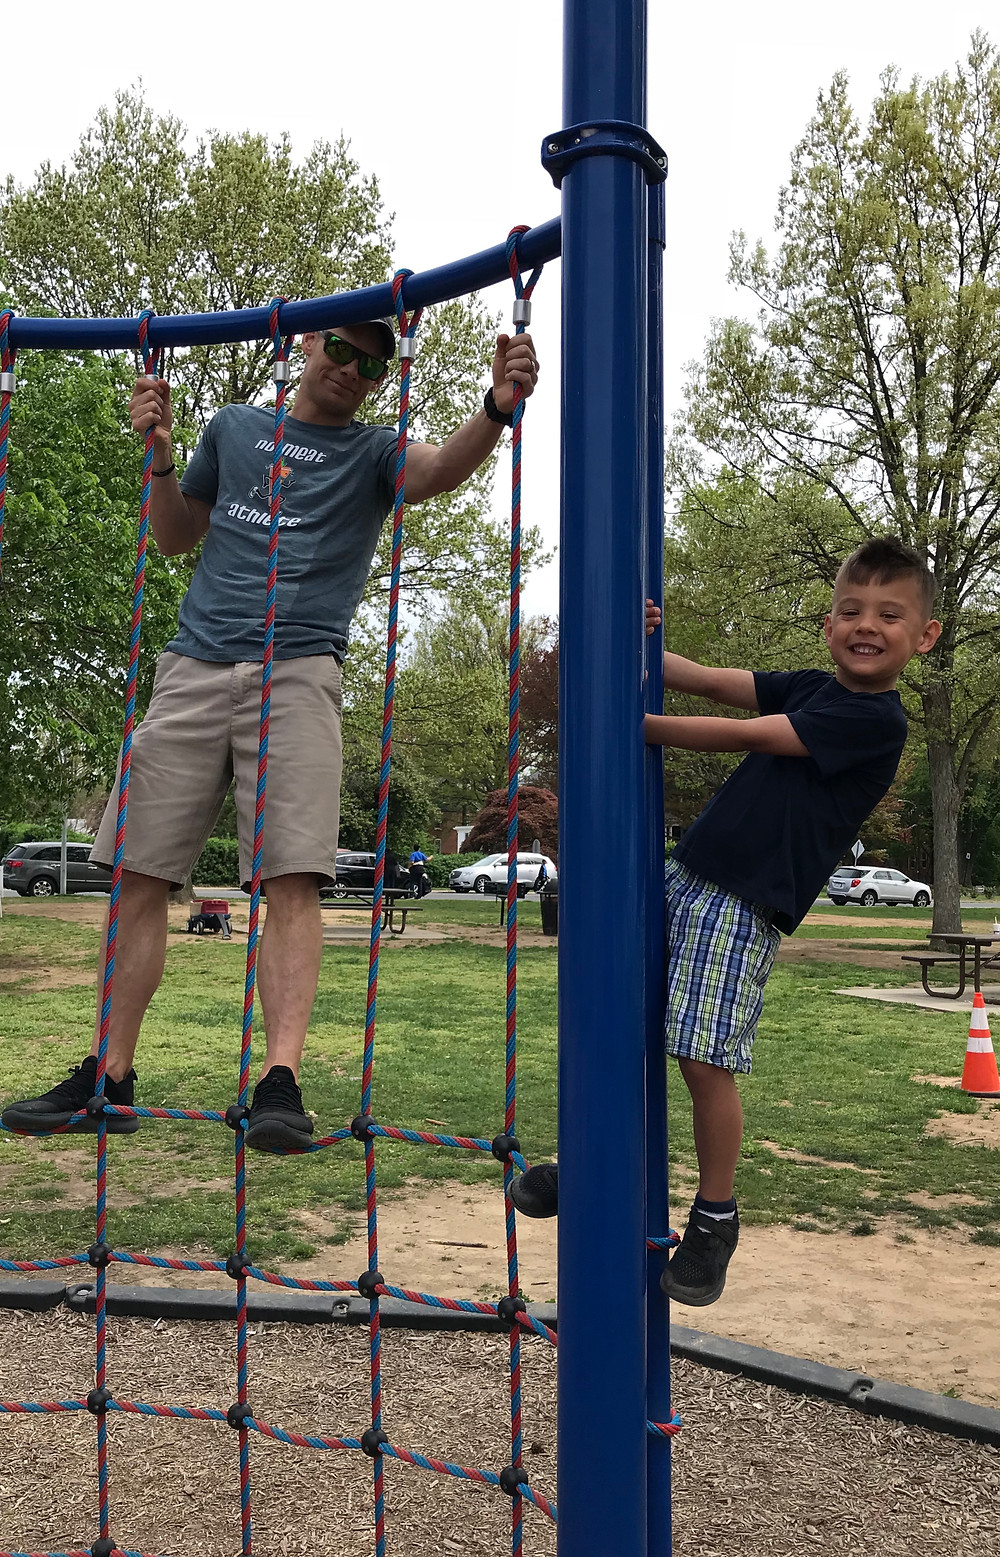 Kids with energy playing at park